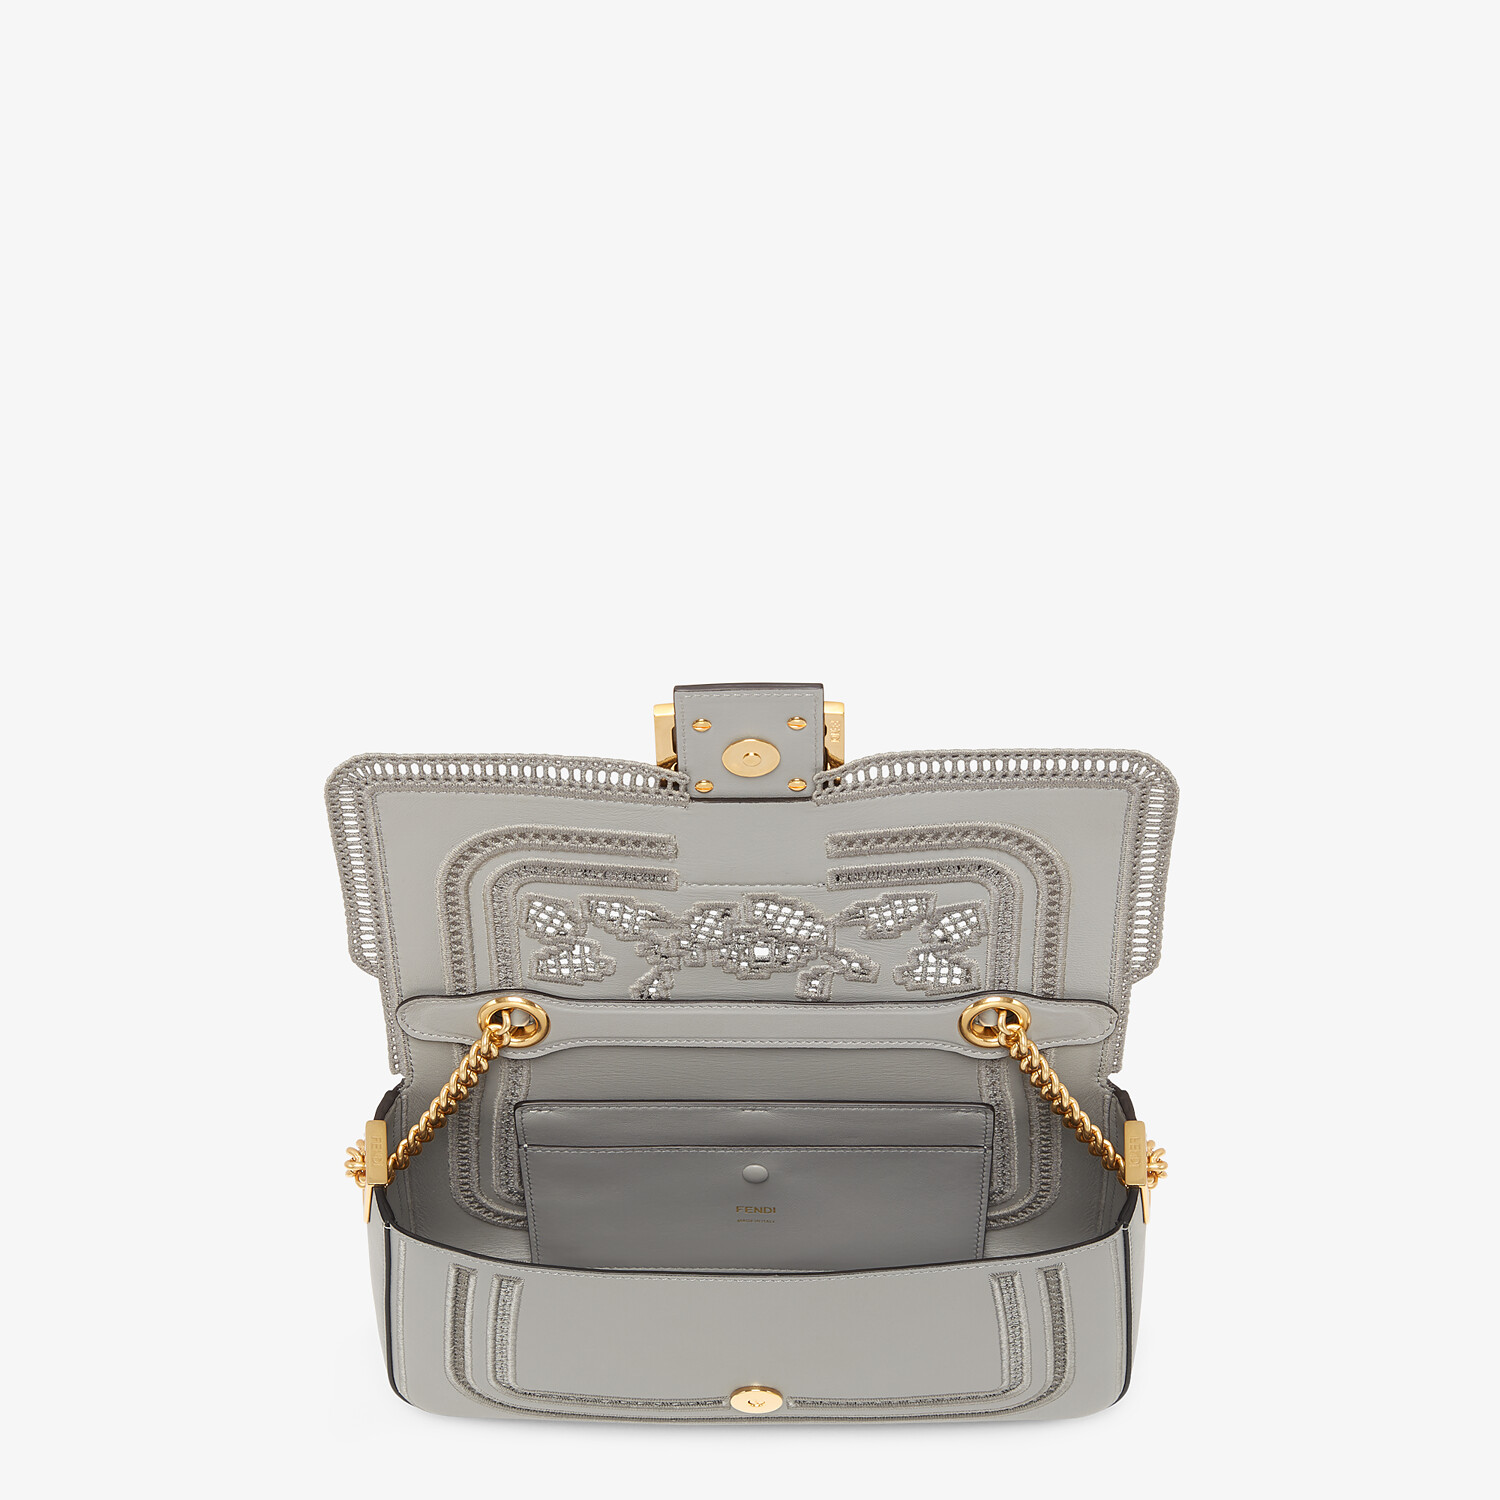 FENDI BAGUETTE CHAIN - Embroidered gray leather bag - view 4 detail